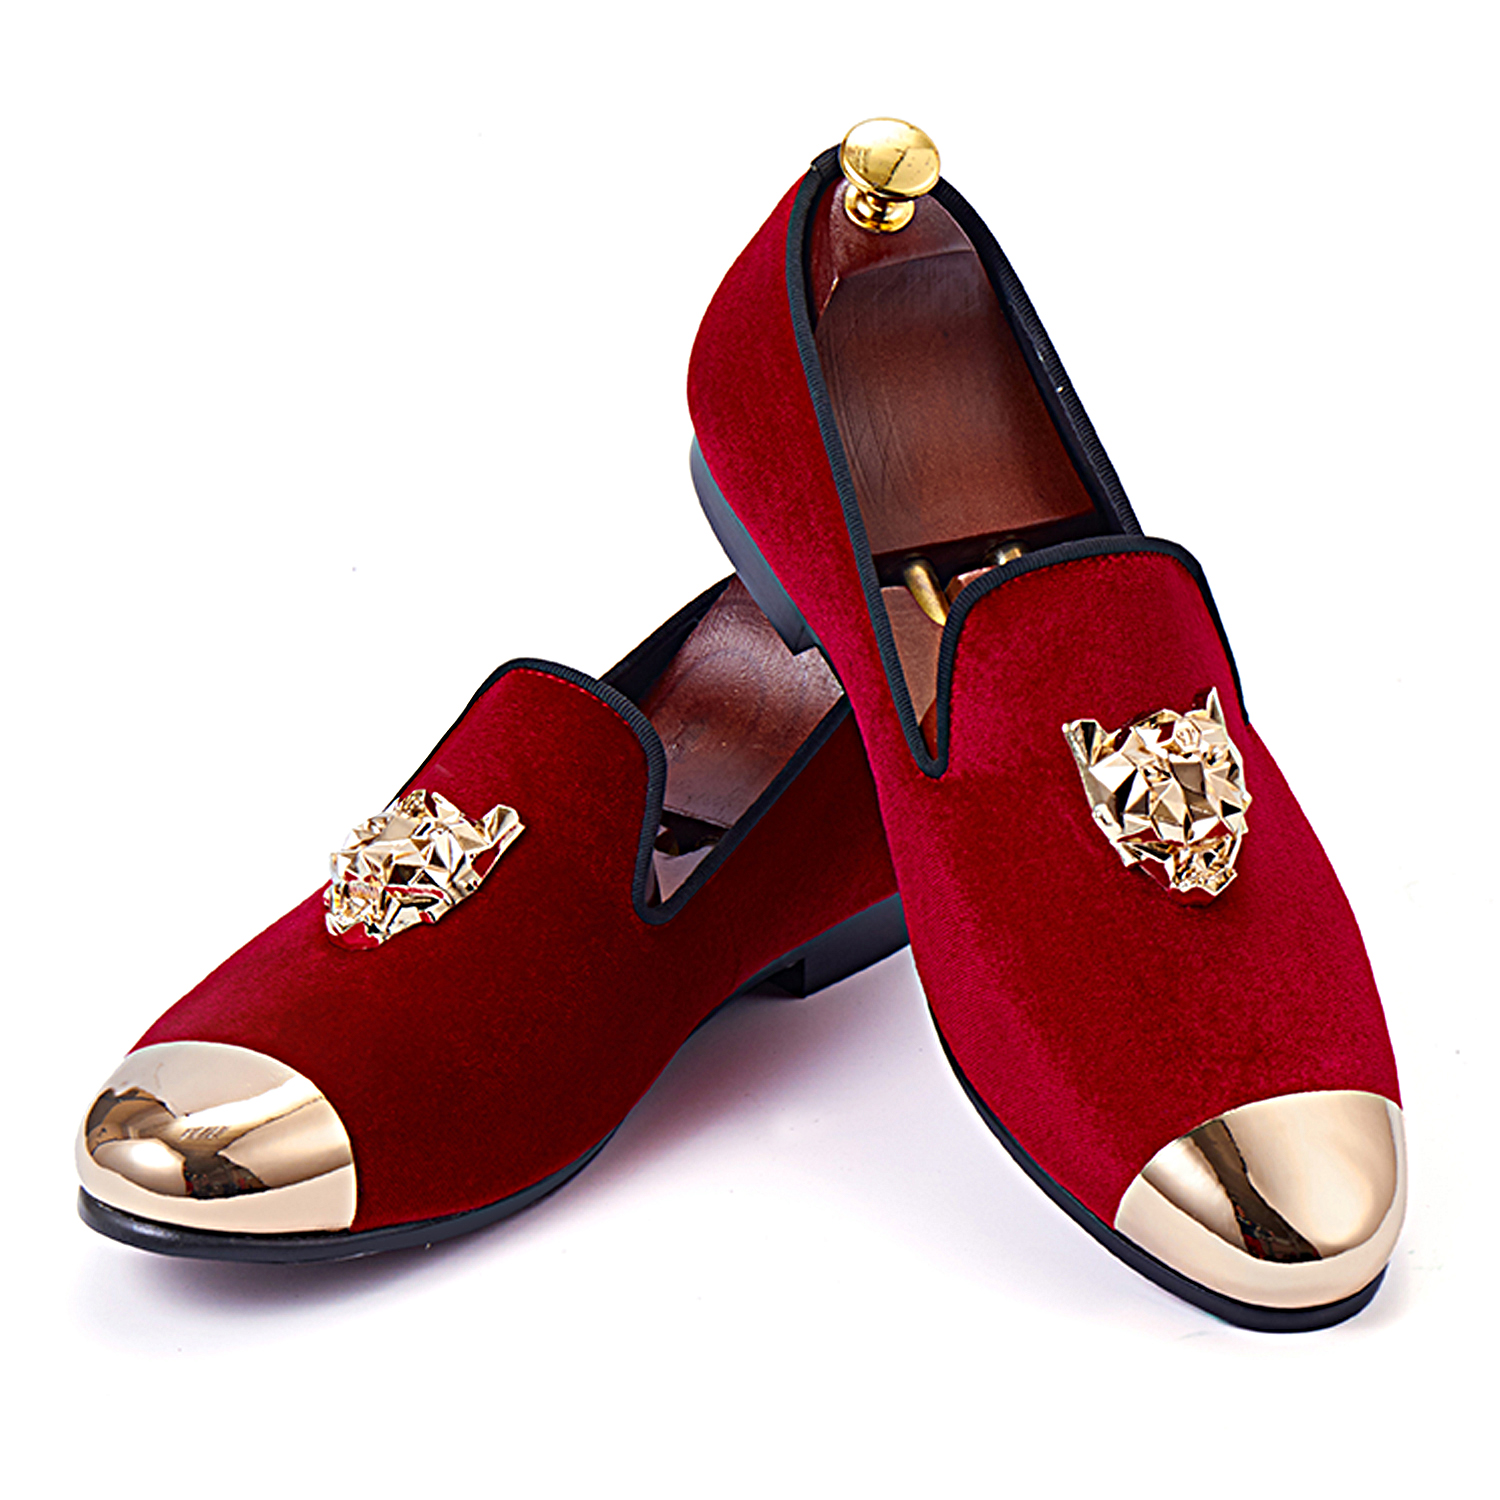 Harpelunde Animal Buckle Men Wedding Shoes Red Velvet Slippers Gold Cap Toe Loafer Shoes Size 6-14